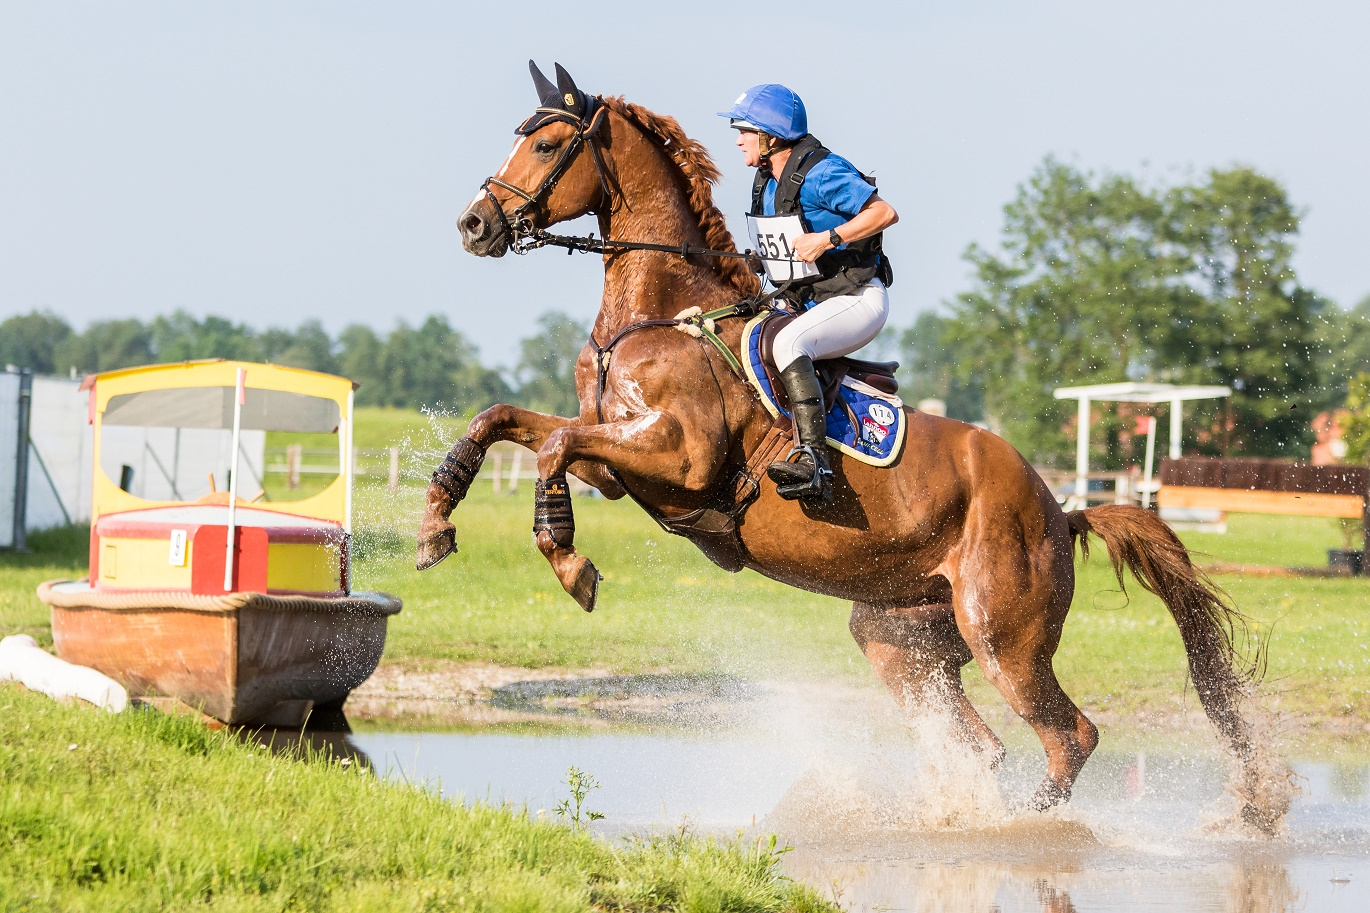 Hamilton, 32nd place CIC2* Renswoude 2016 ©eventingphoto.com